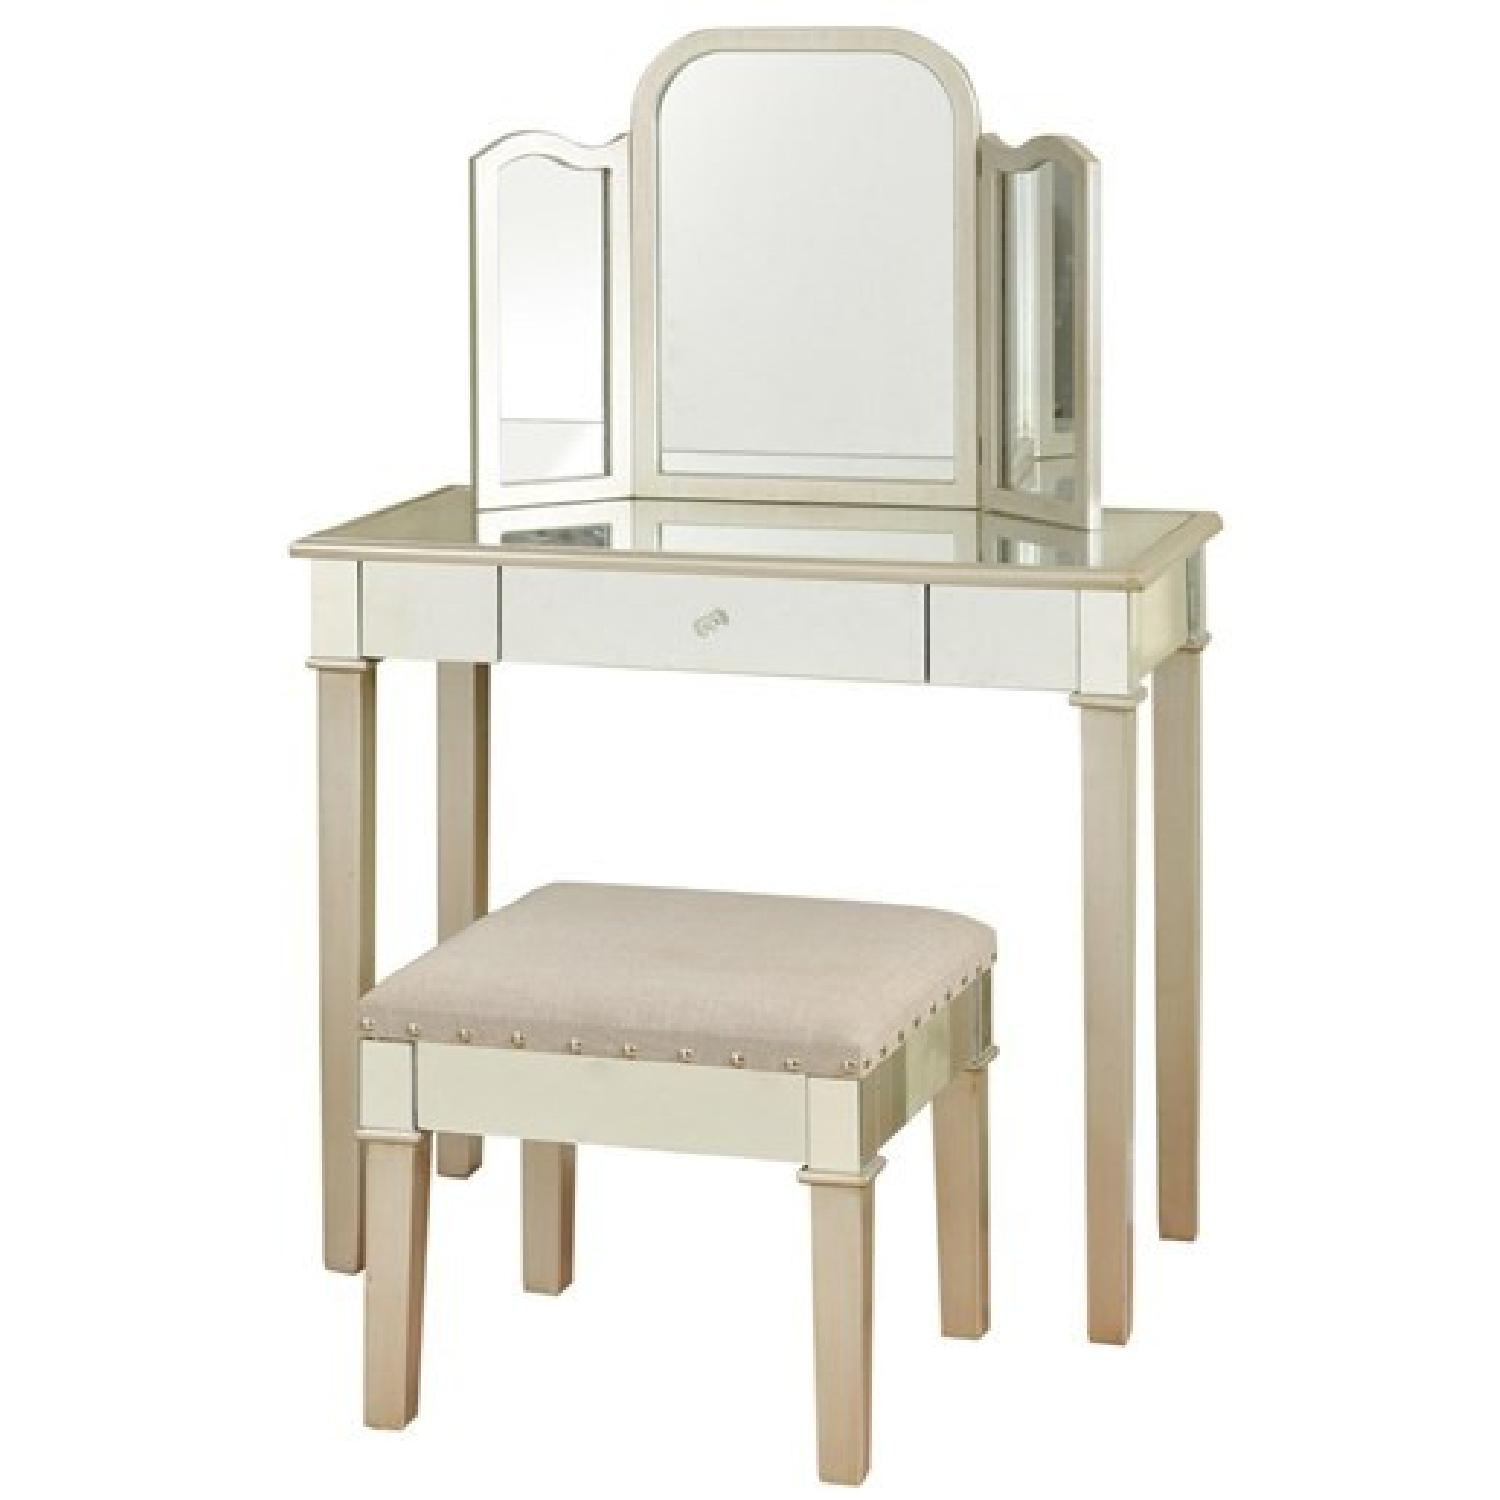 Makeup Vanity w/ Trifold Mirror & Small Bench - image-0